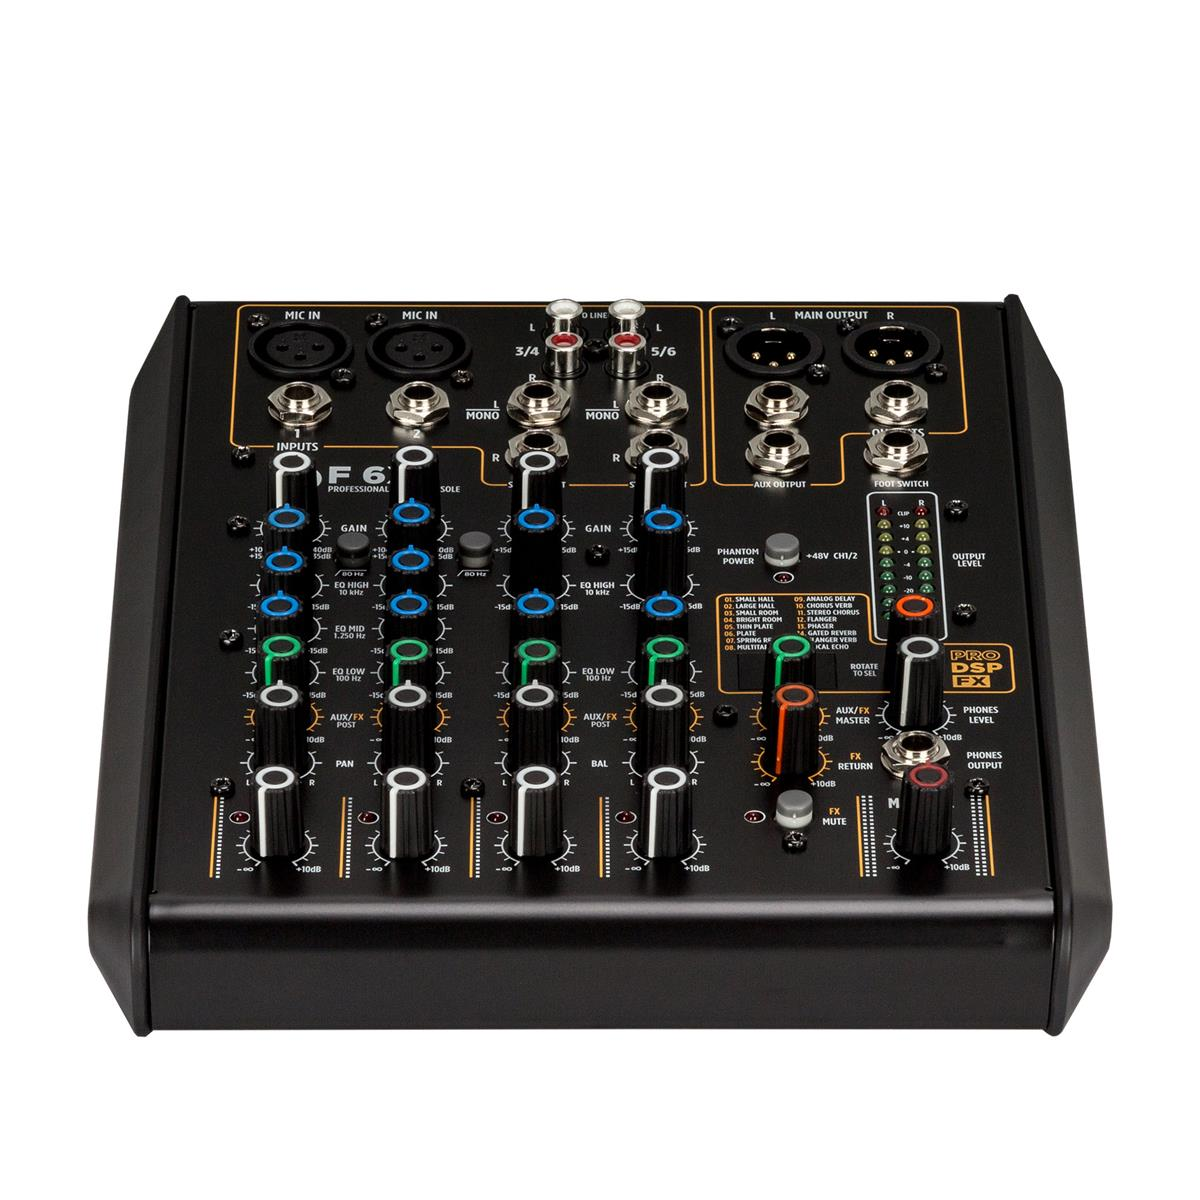 RCF F 6X 90-240V 6 channel mixing console with multi-FX